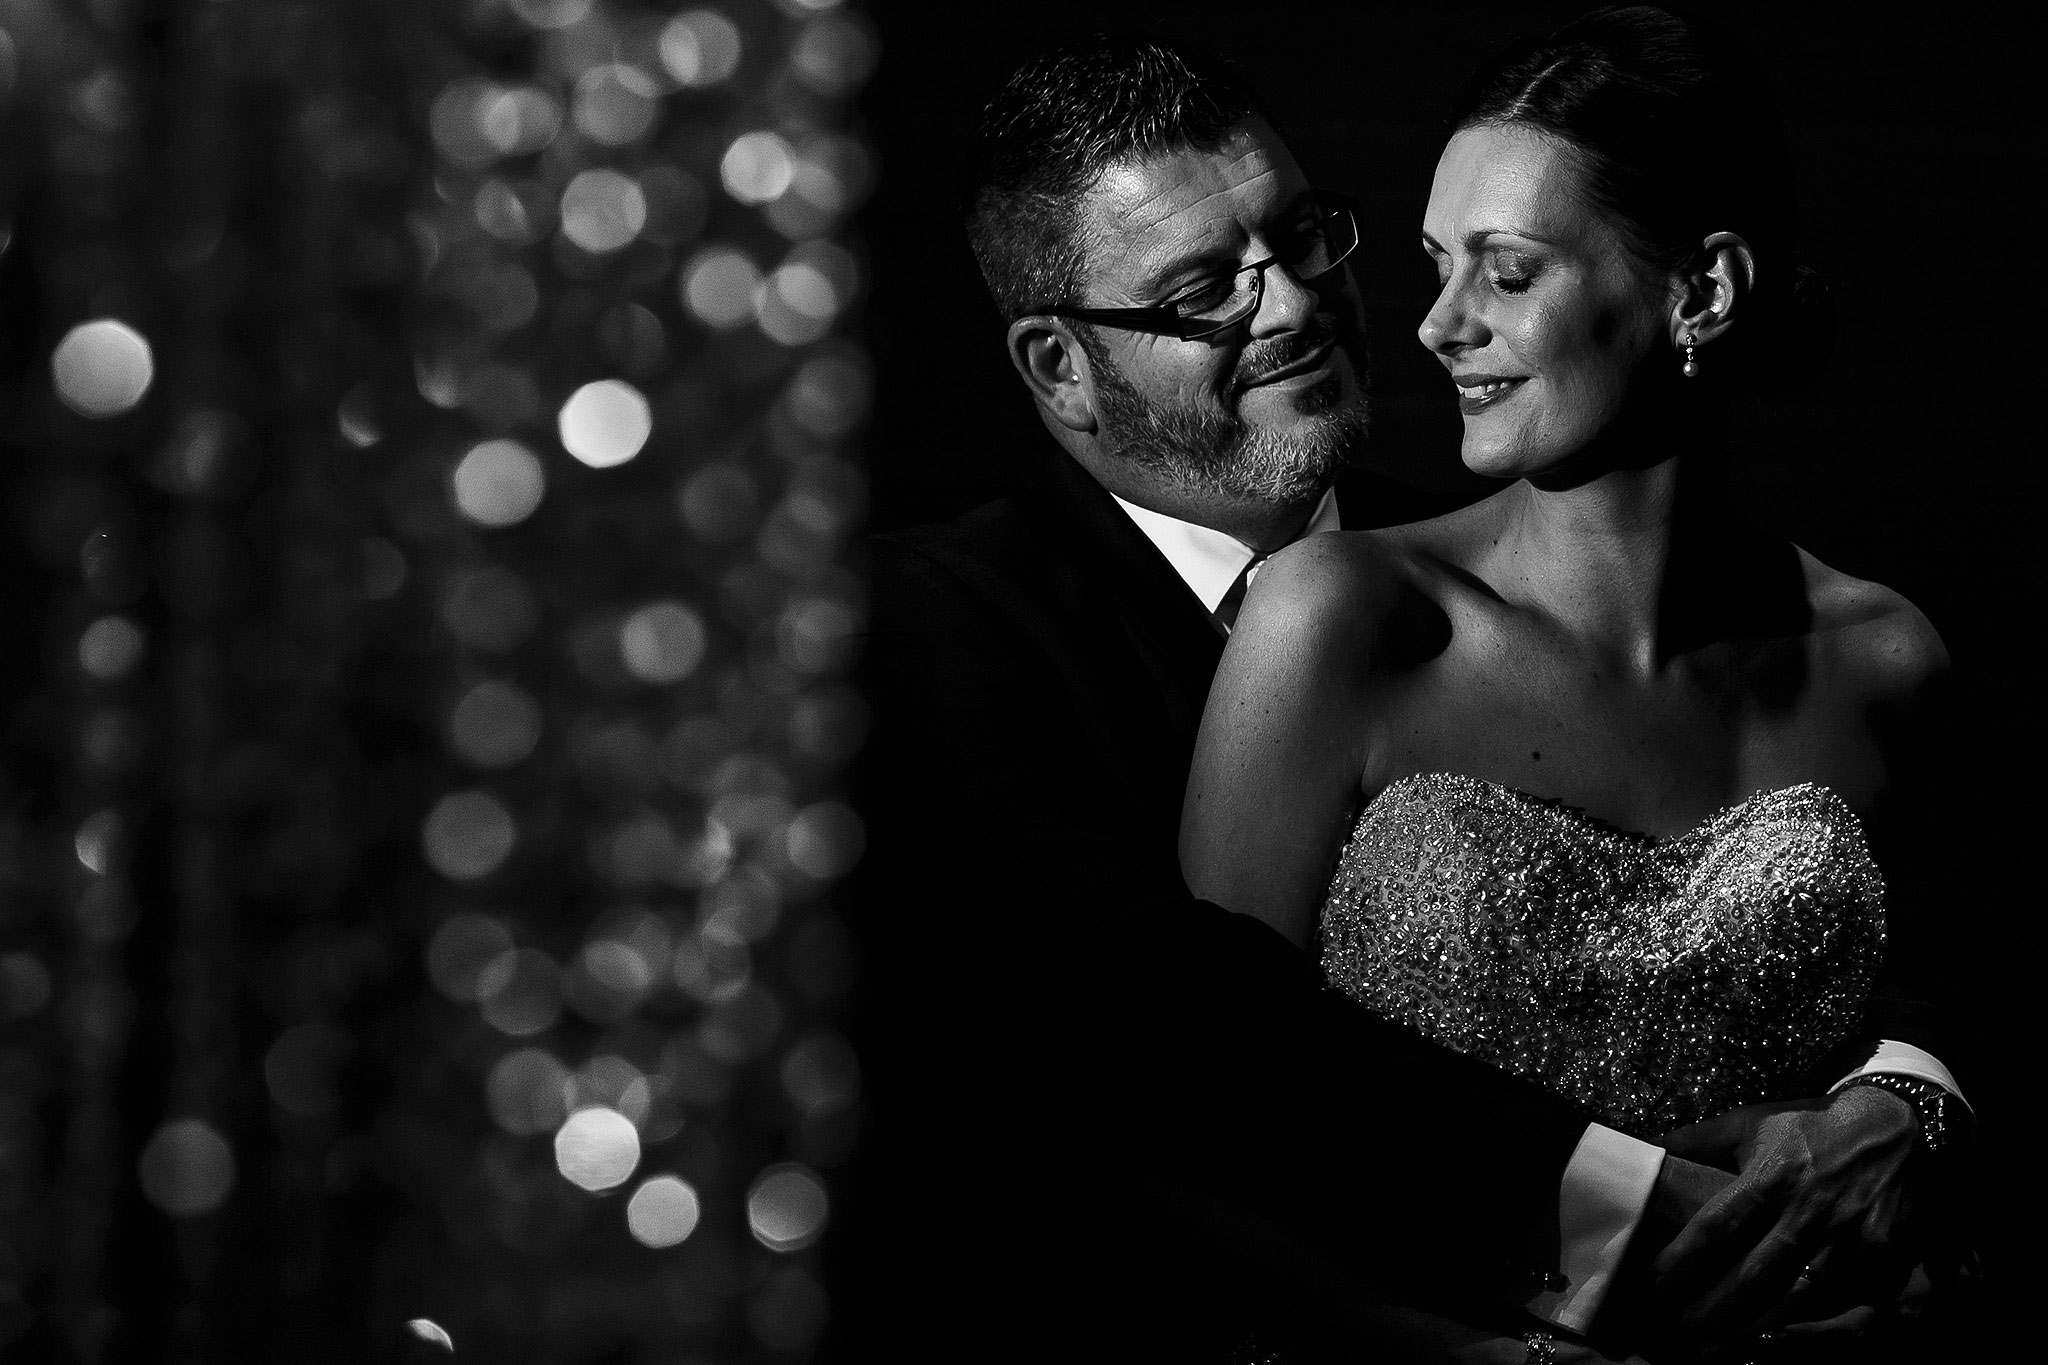 Creative wedding portrait using off camera flash at Stanley House Hotel wedding reception